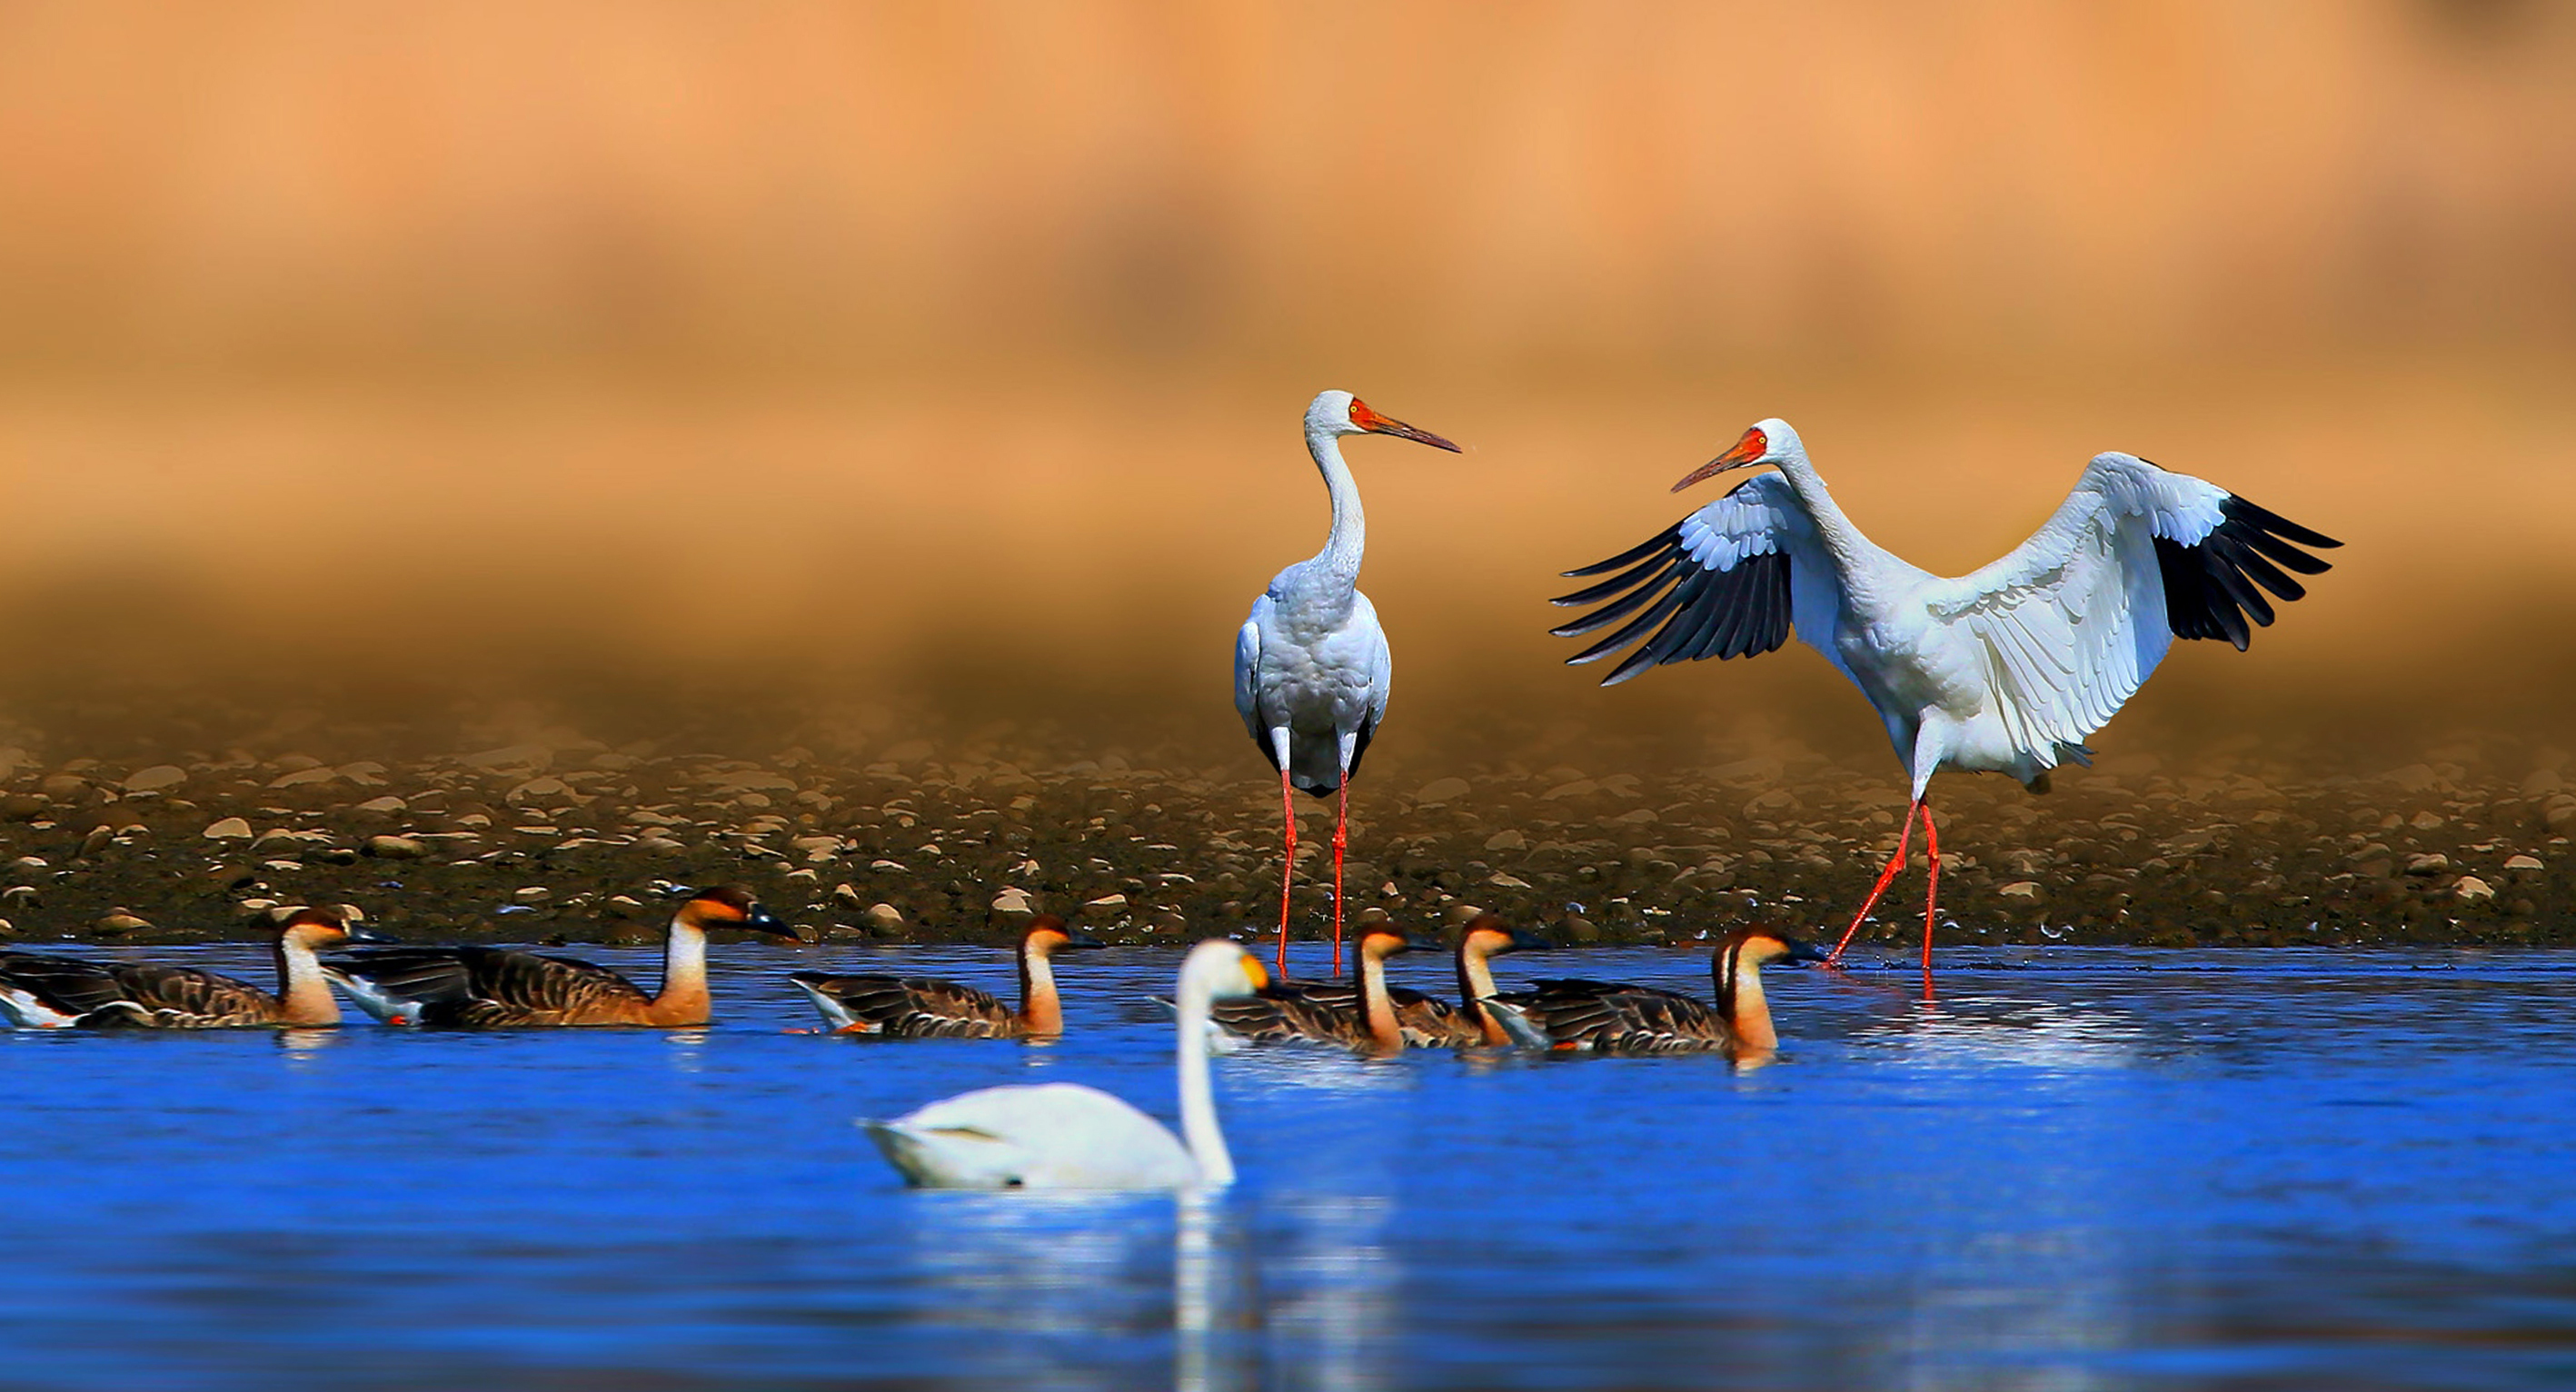 The majestic Siberian cranes fly south every winter. Source: Shutterstock